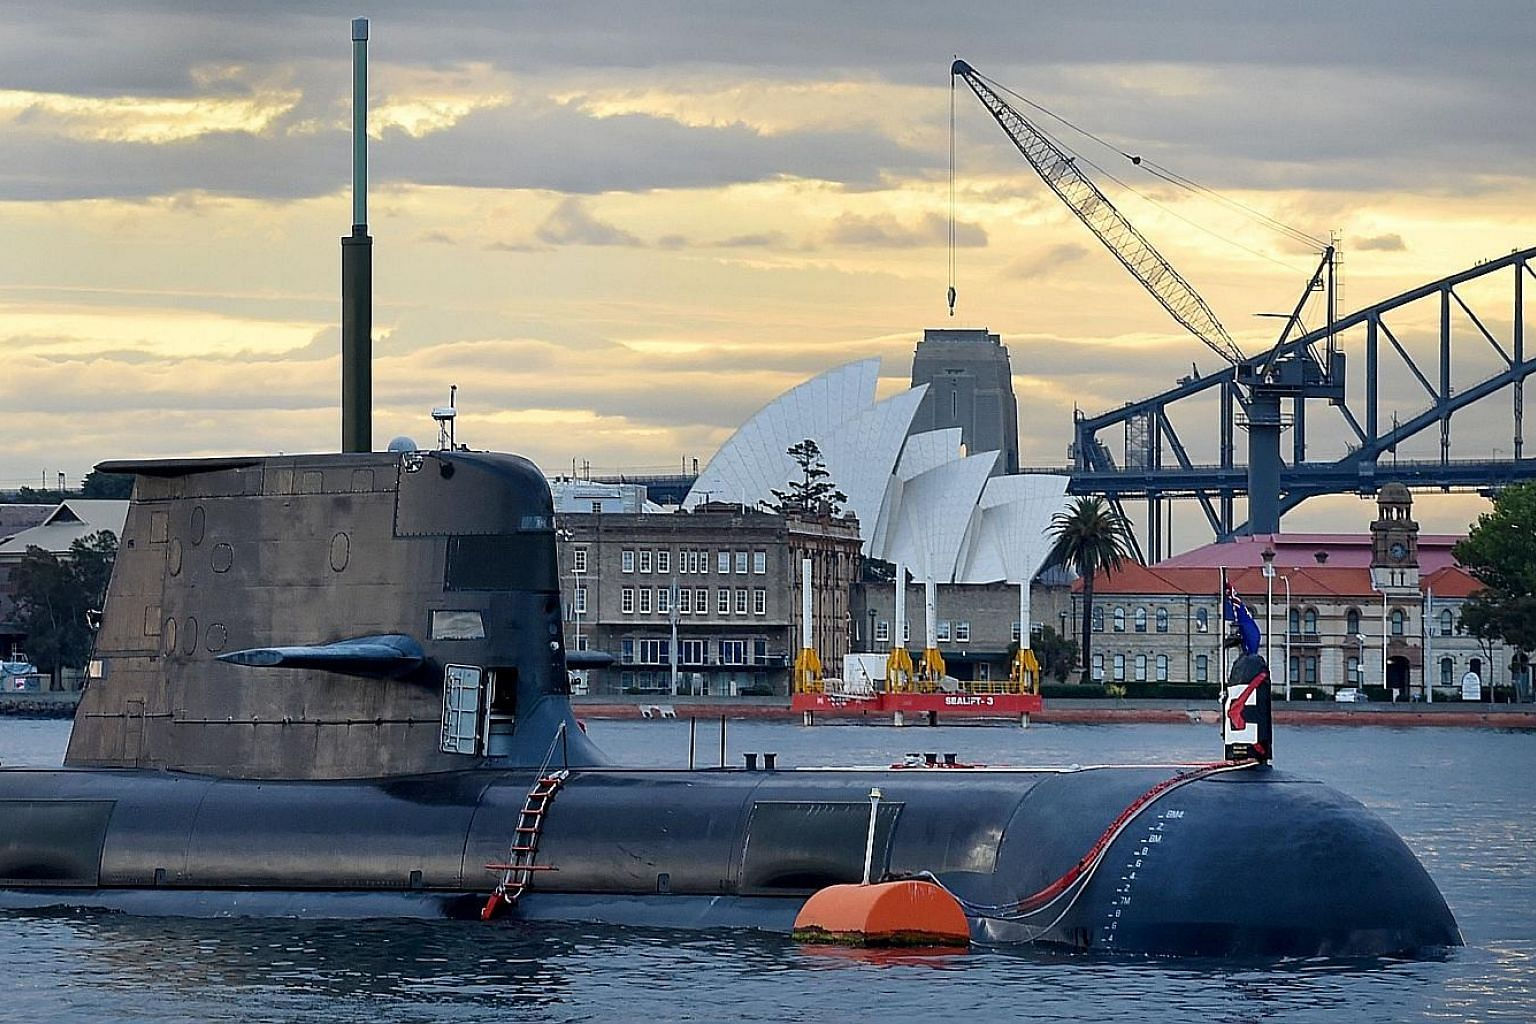 A Royal Australian Navy submarine in Sydney Harbour. Australia's naval shipbuilding plan unveiled last week marks the biggest boost to the navy since World War II.